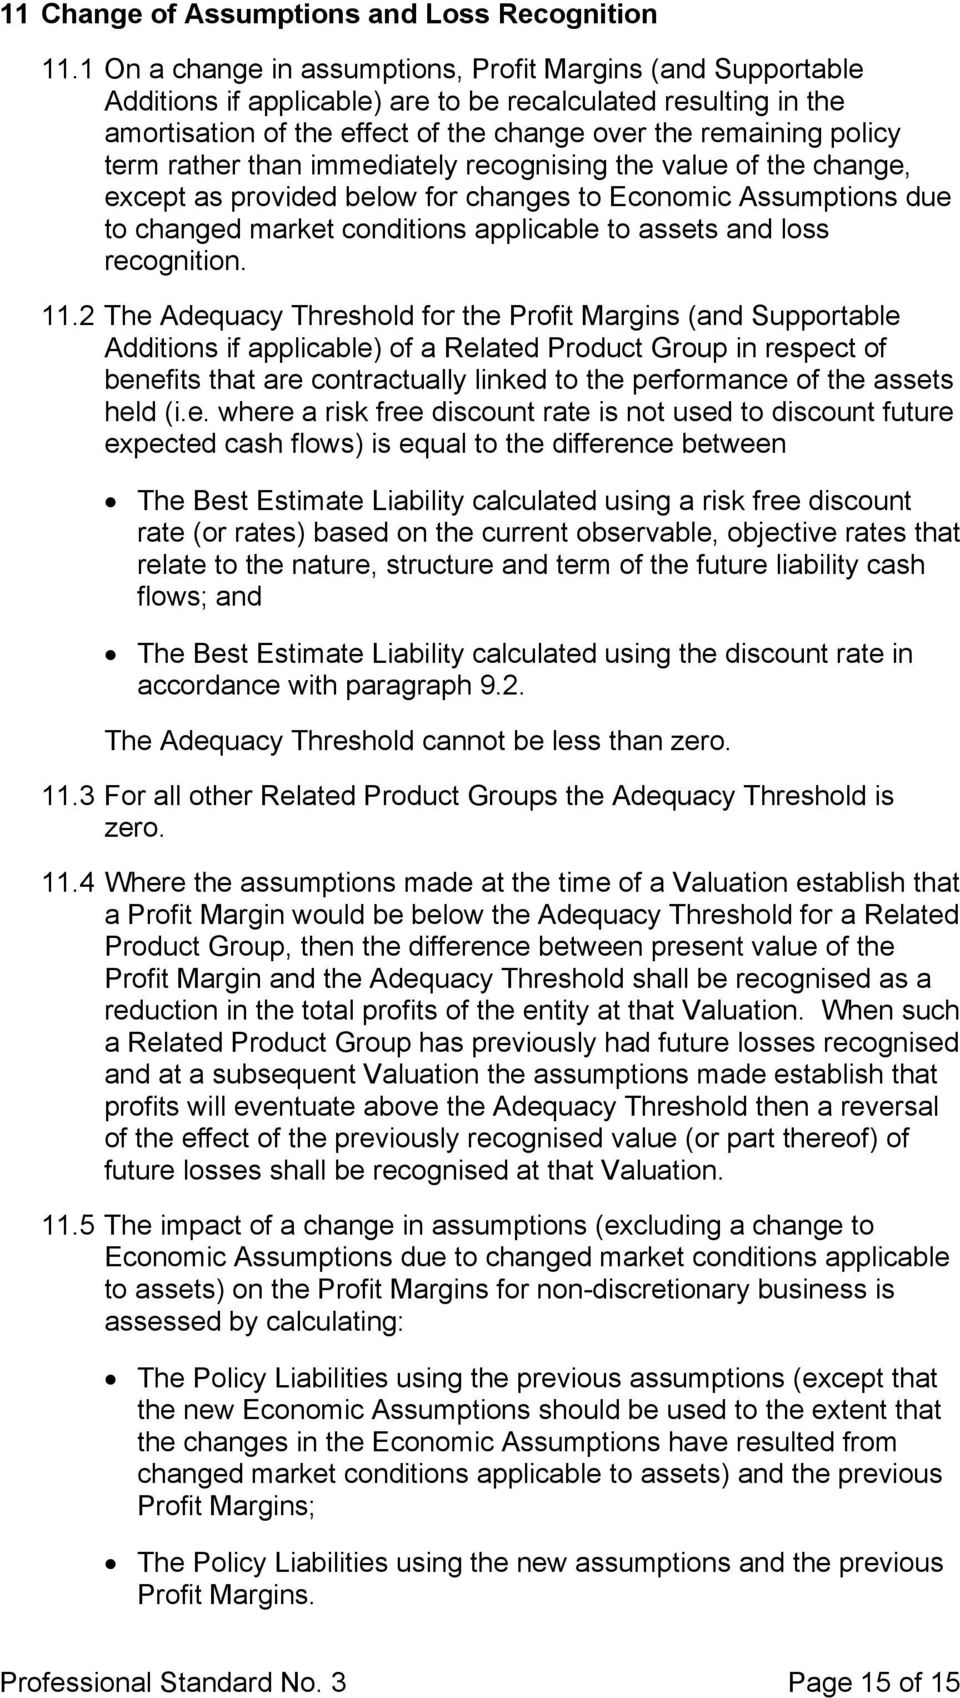 rather than immediately recognising the value of the change, except as provided below for changes to Economic Assumptions due to changed market conditions applicable to assets and loss recognition.